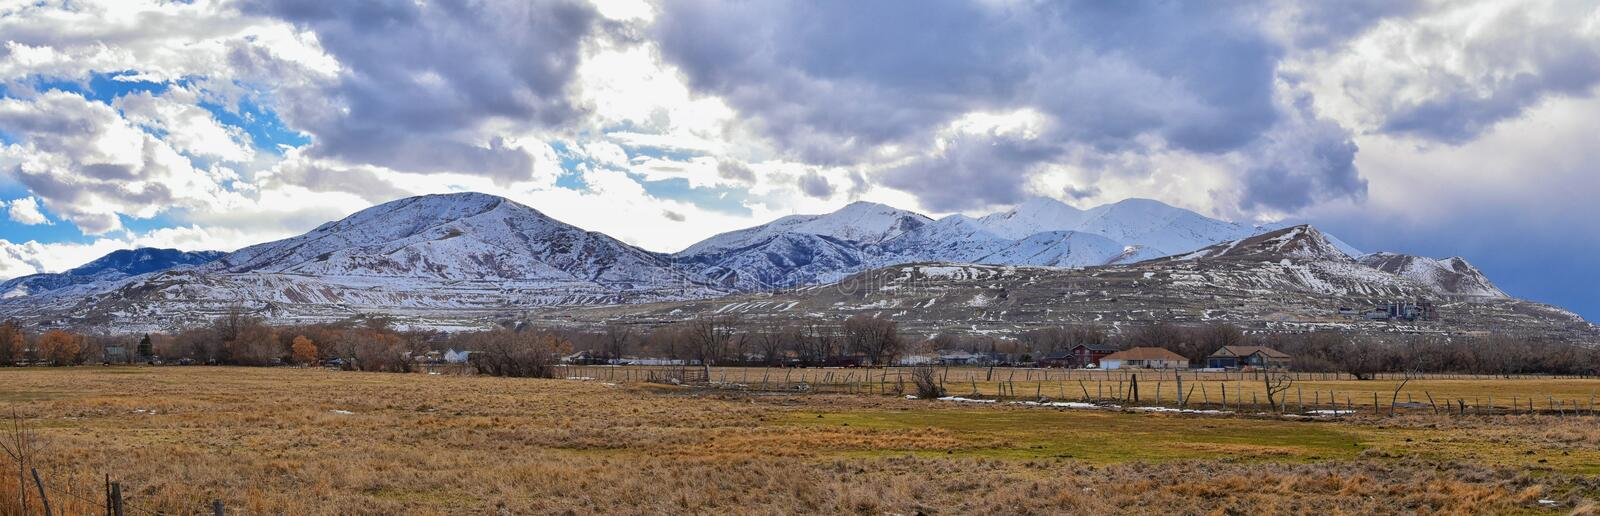 Winter Panorama of Oquirrh Mountain range snow capped, which includes The Bingham Canyon Mine or Kennecott Copper Mine, rumored th. E largest open pit copper royalty free stock image